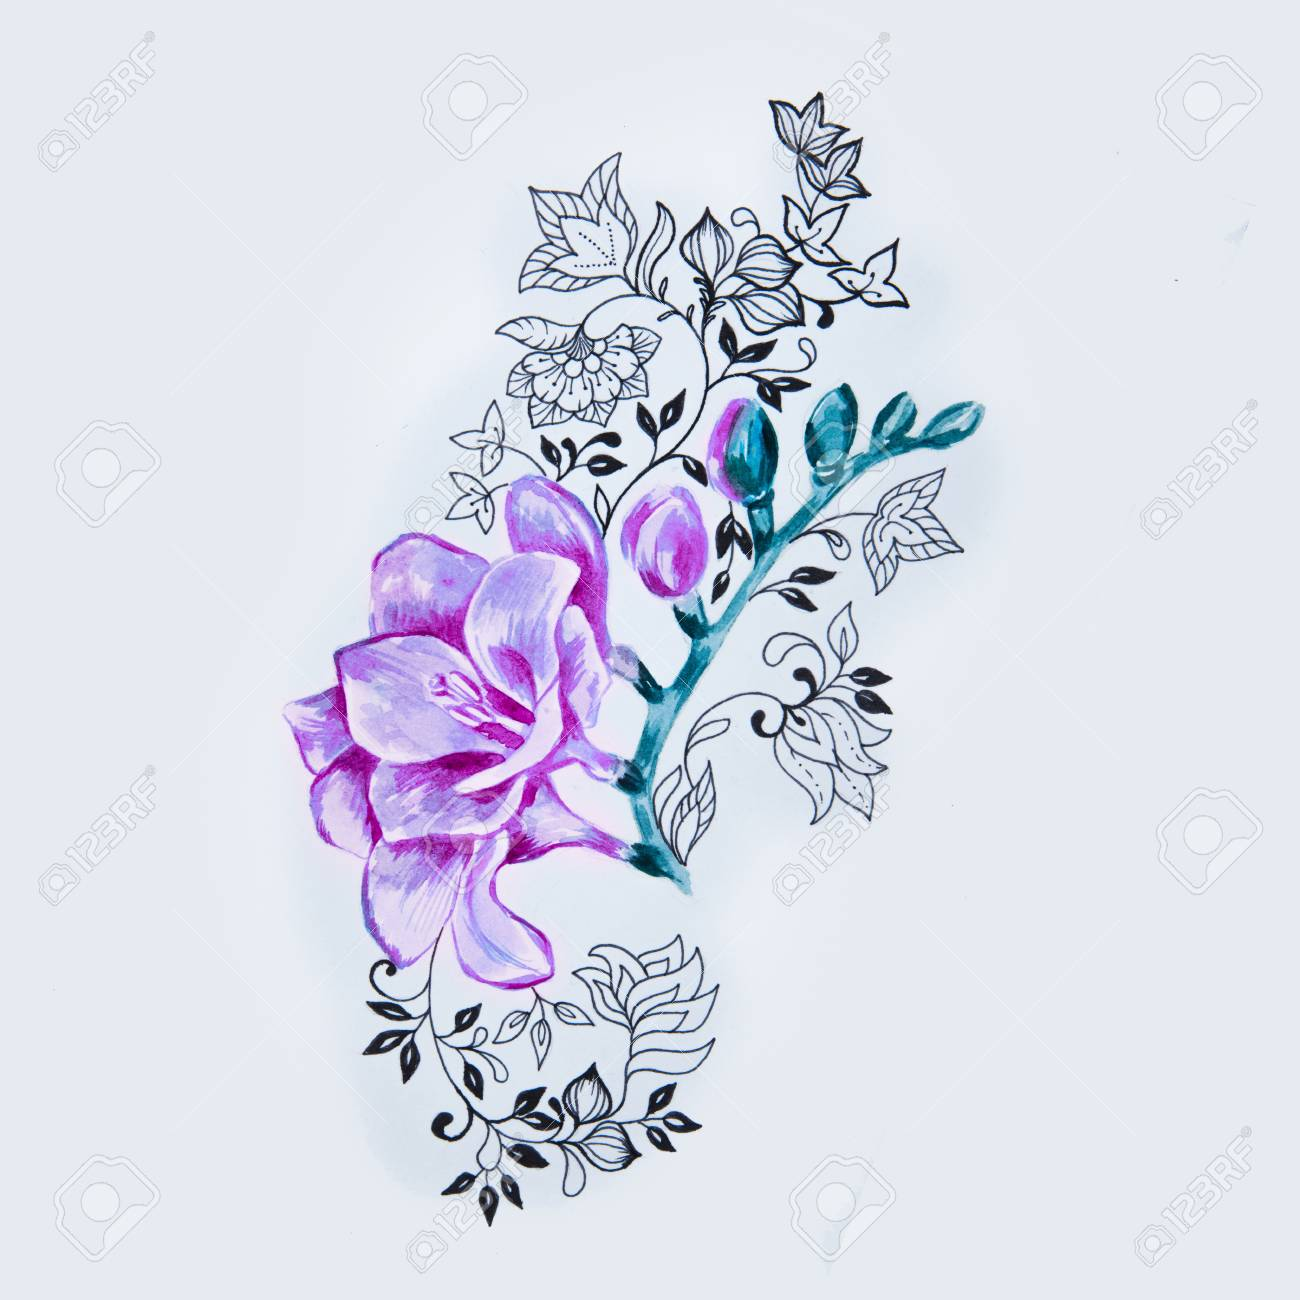 ab4fc7fca Sketch of beautiful purple freesia flower in a pattern on a white background.  Stock Photo